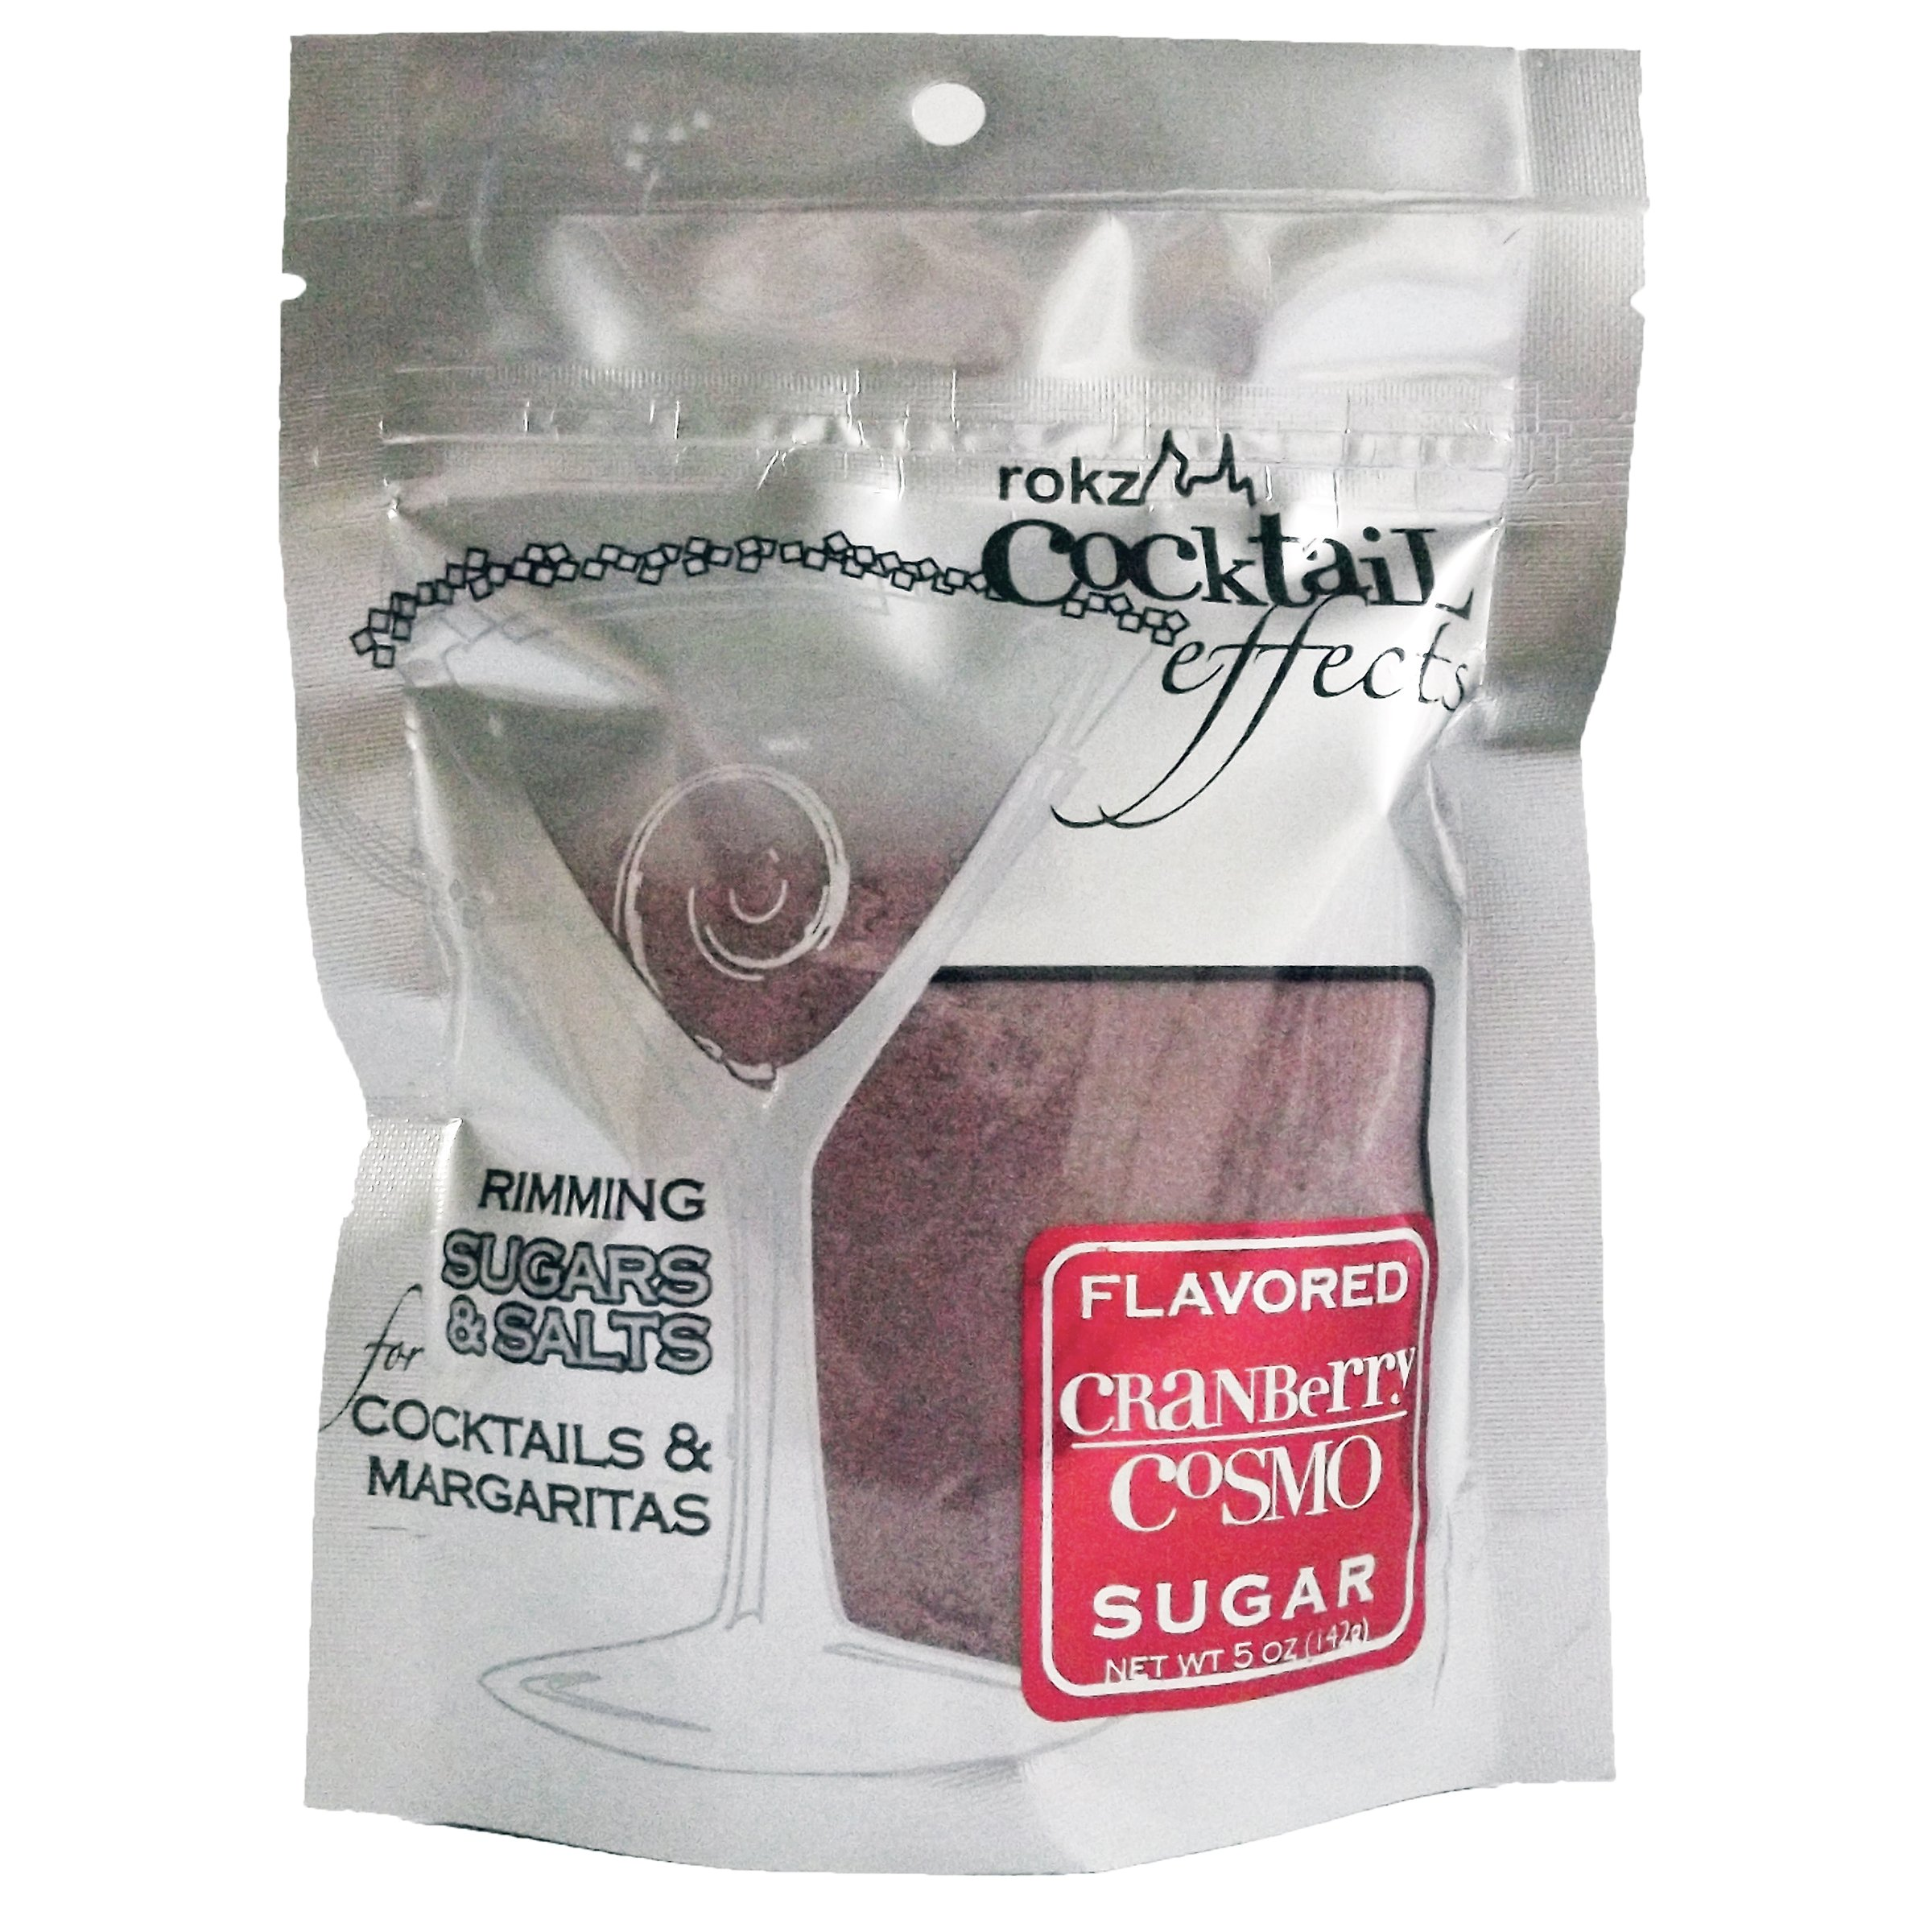 Cranberry Cosmo Cocktail Sugar, Drink Rimmer Pack of 3 by Rokz (Image #1)